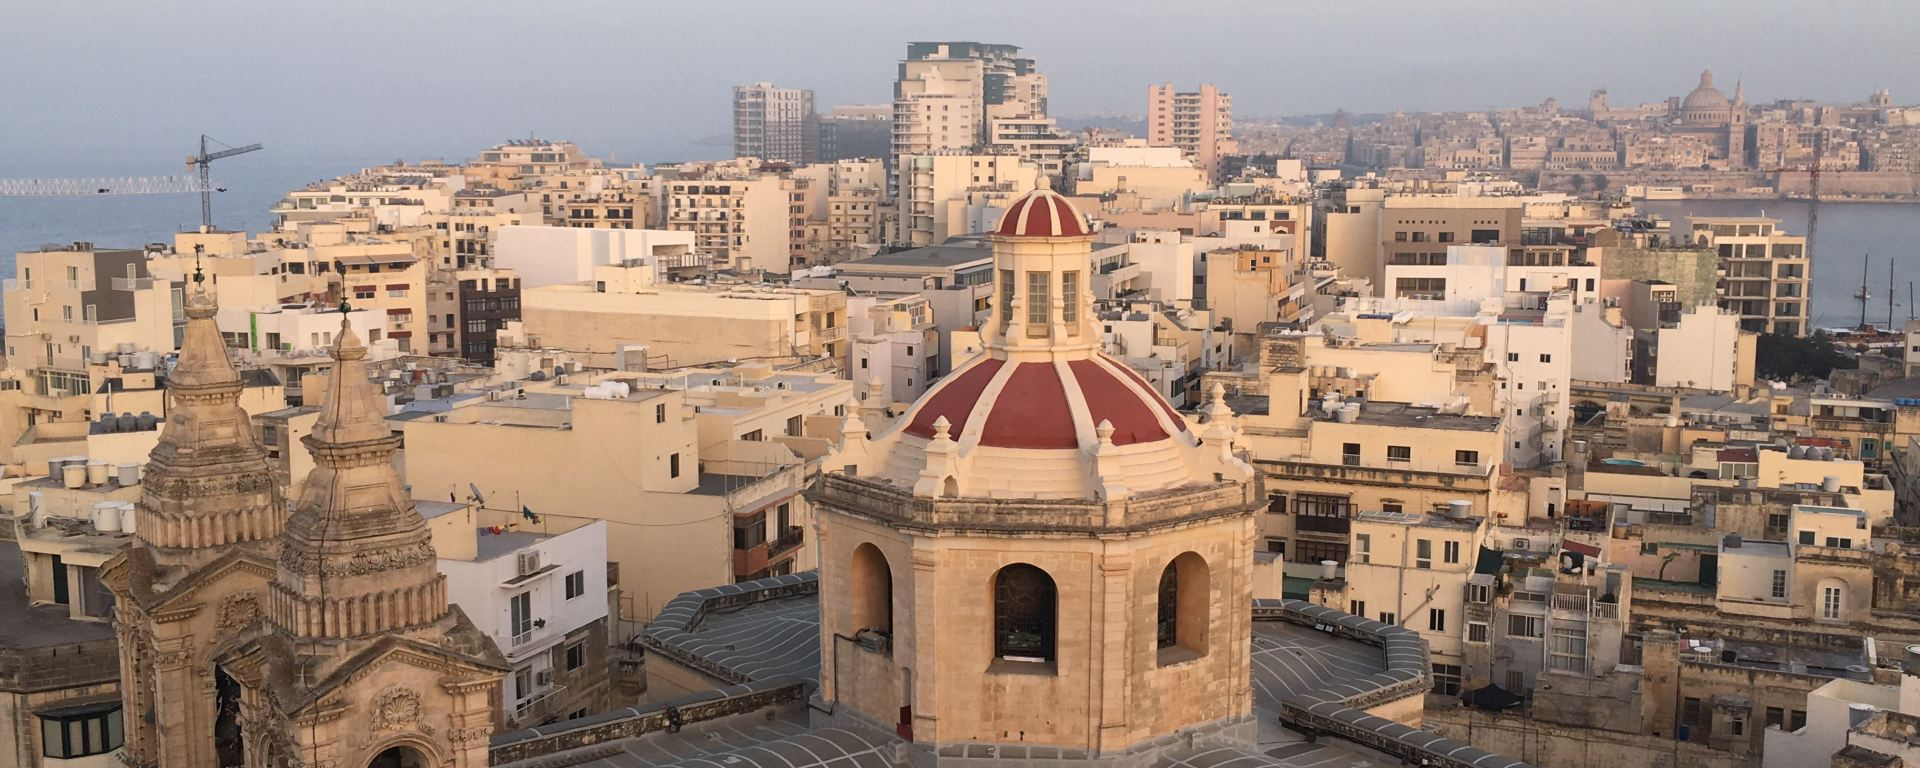 Image of the Keepers trip to Malta looking over Church and rest of town